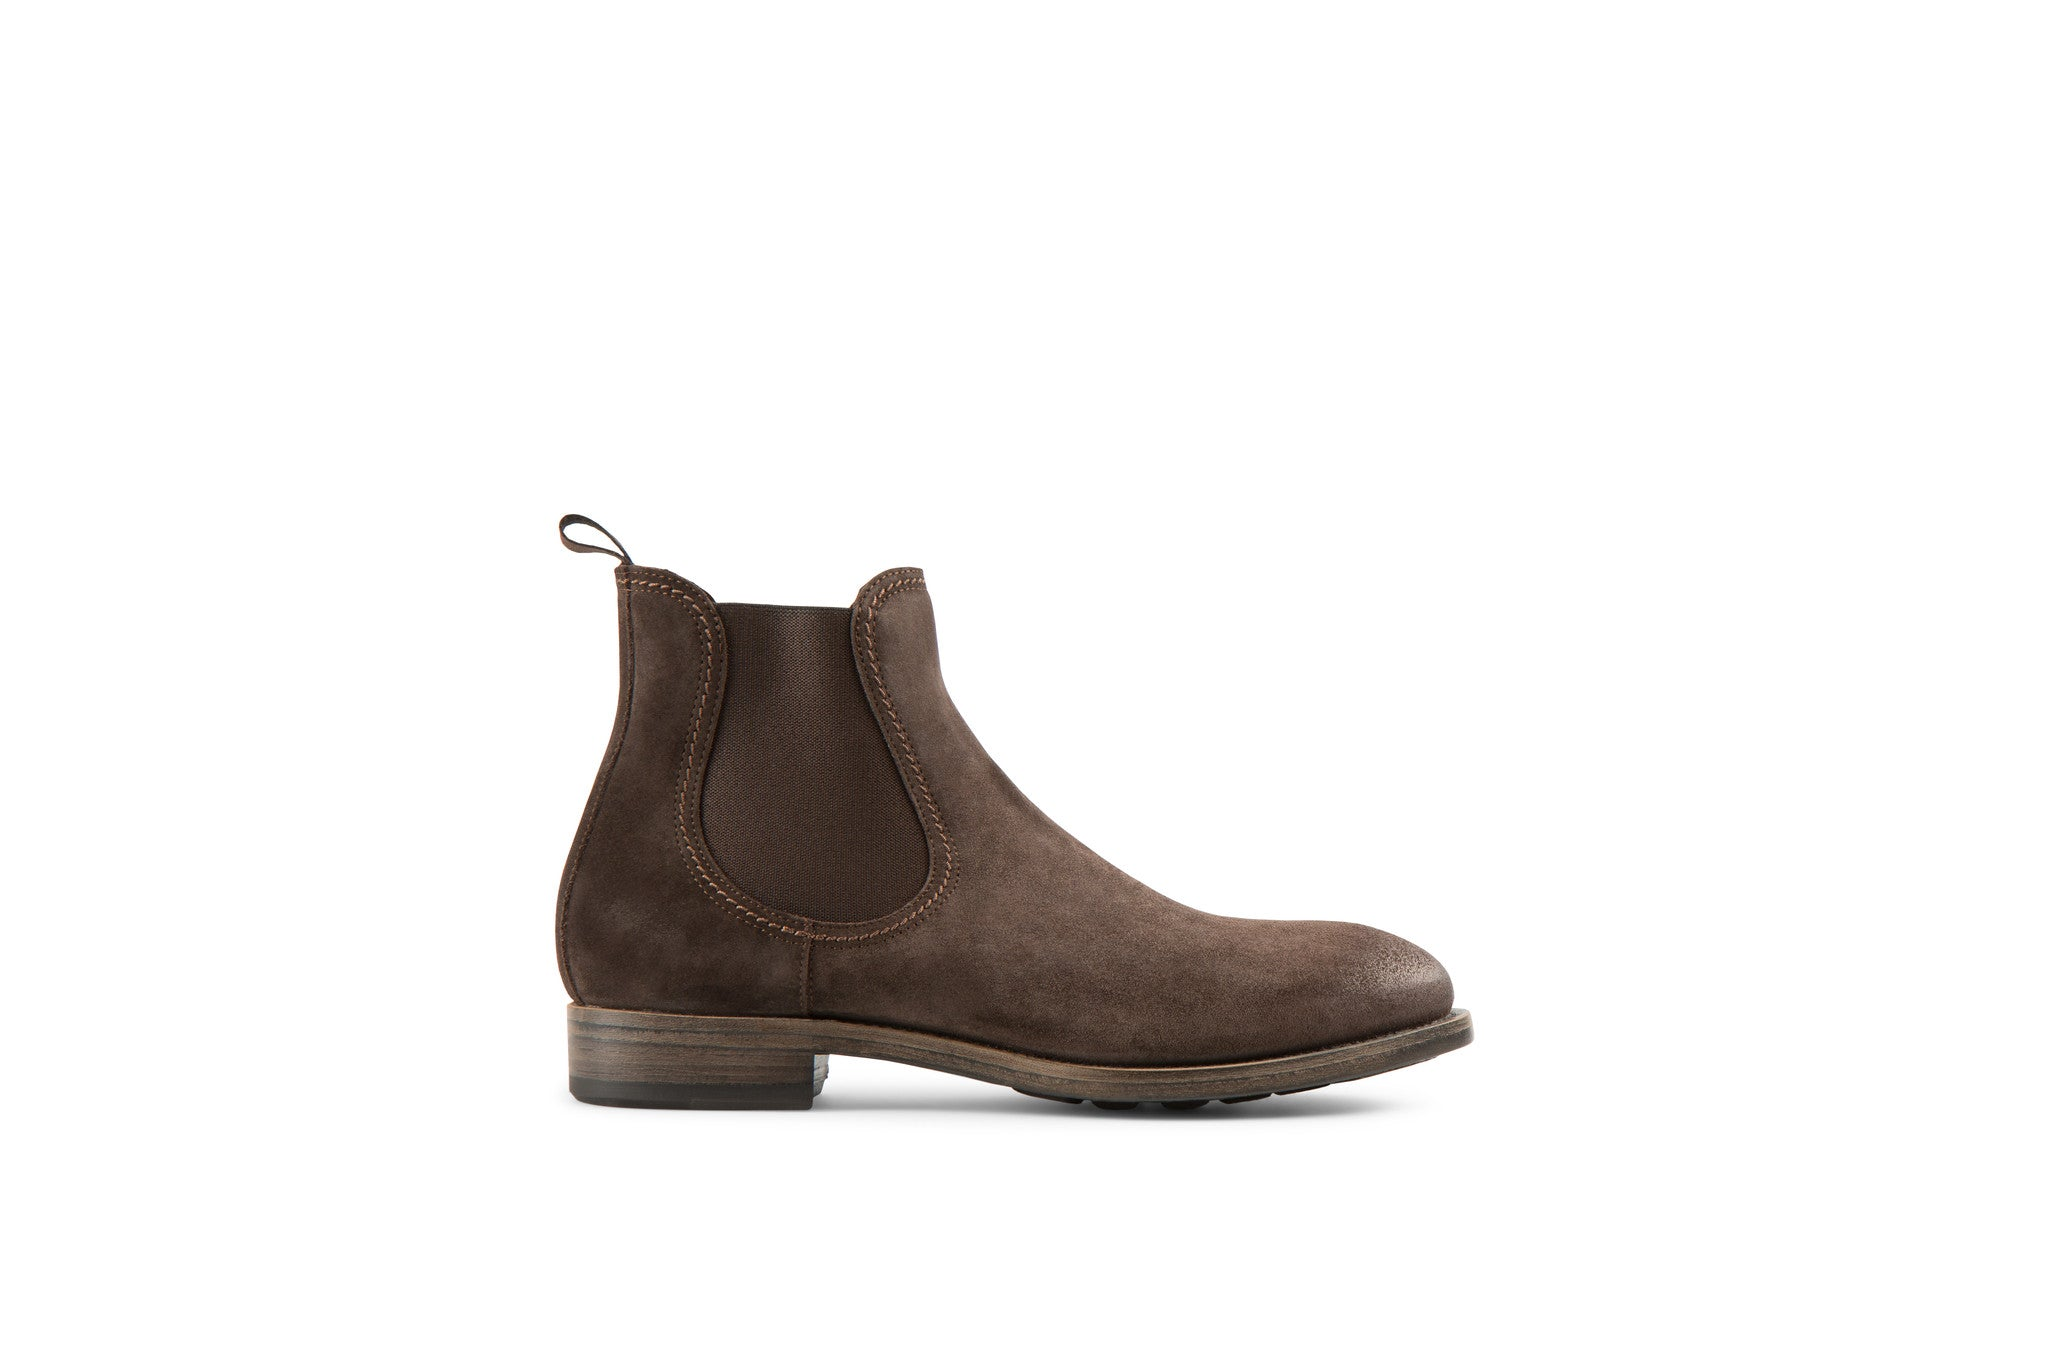 Hanoi Coffee Suede Leather Chelsea Boots